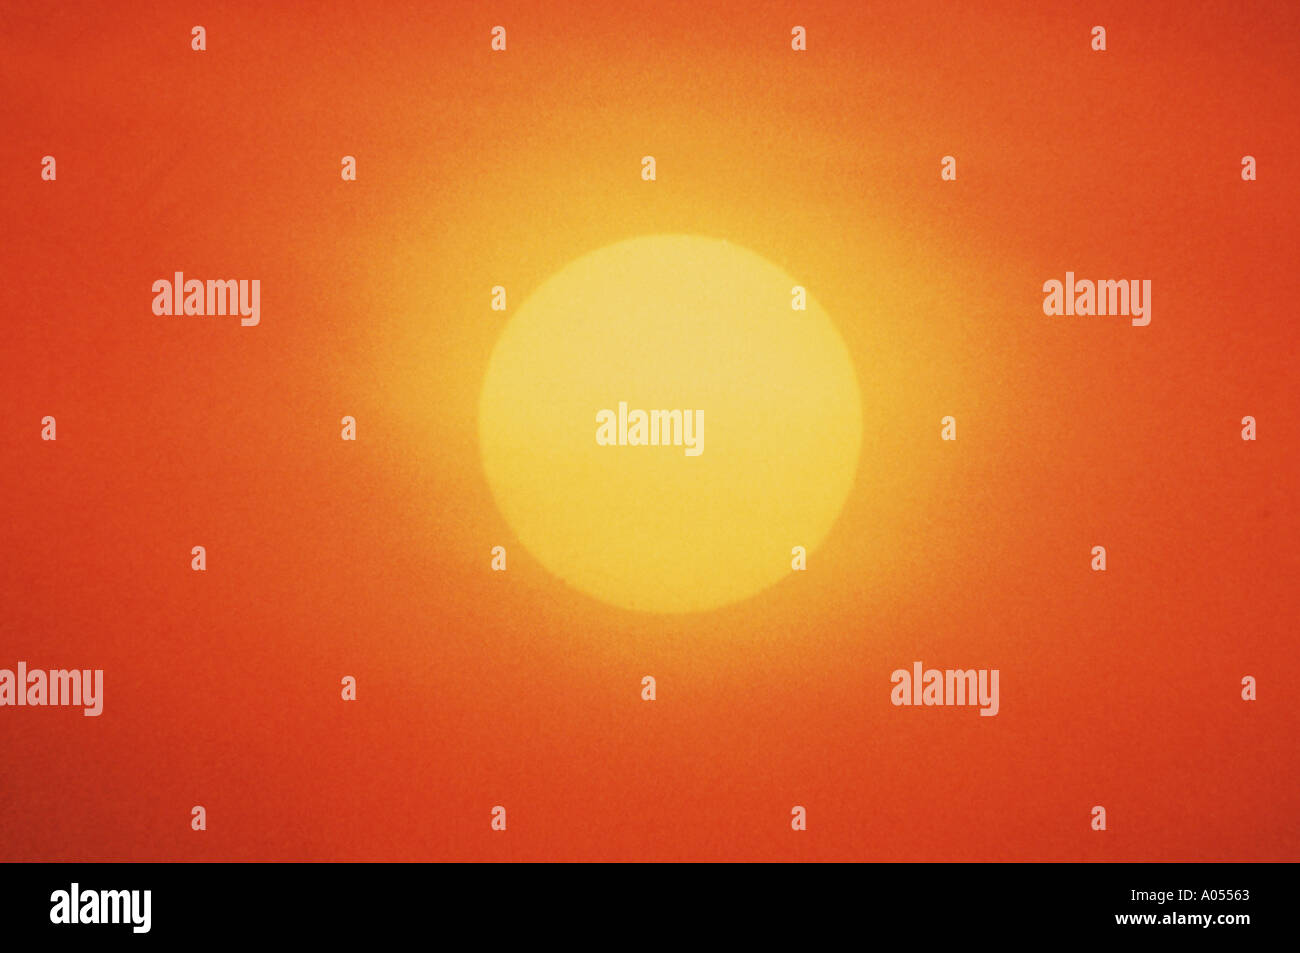 big yellow sun in a red sky sundown evening glow background - Stock Image